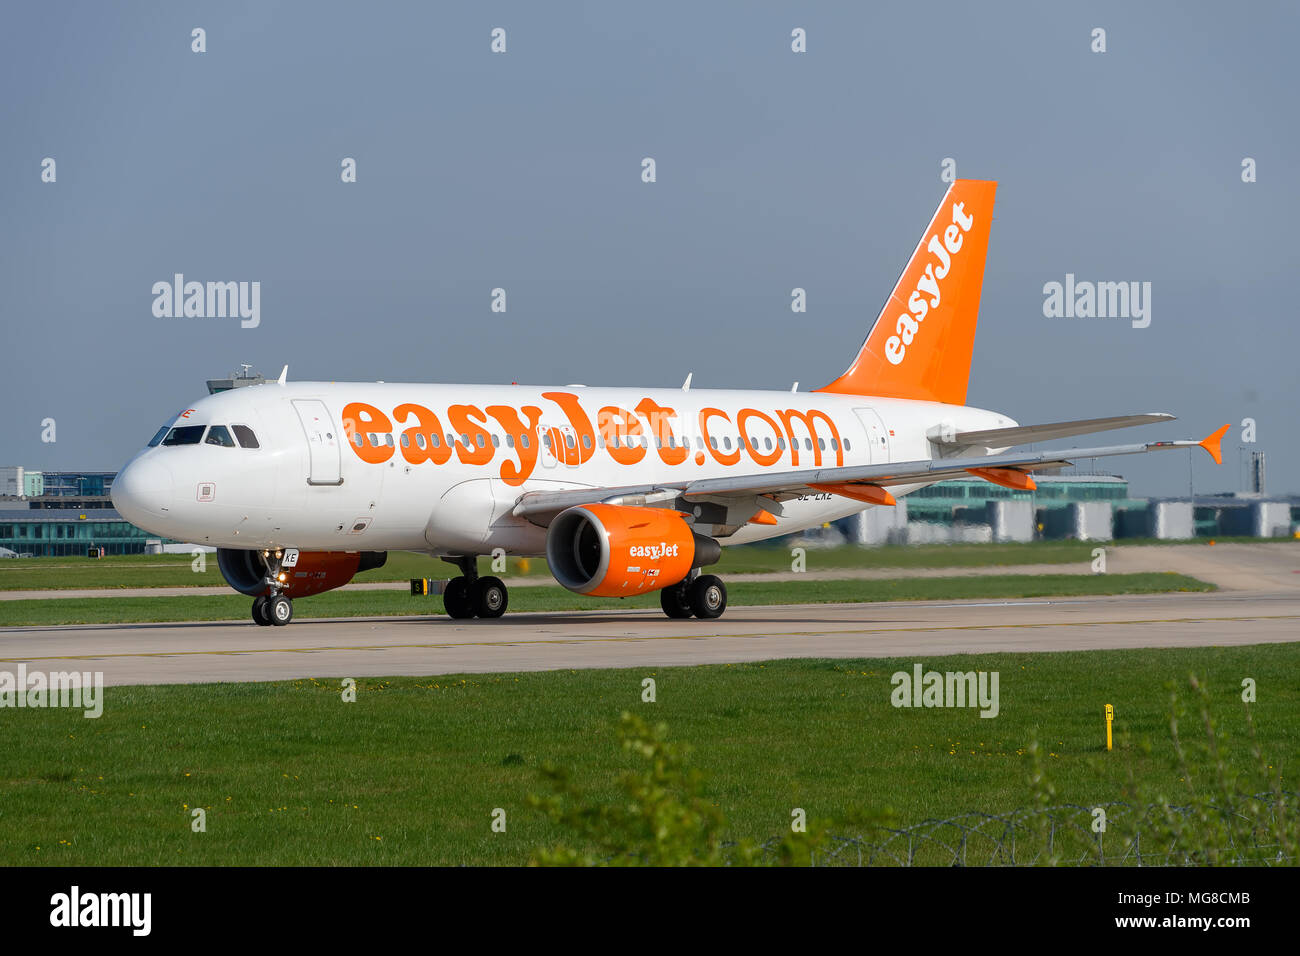 MANCHESTER, UNITED KINGDOM - APRIL 21st, 2018:  Easyjet A319 ready to depart at Manchester Airport - Stock Image